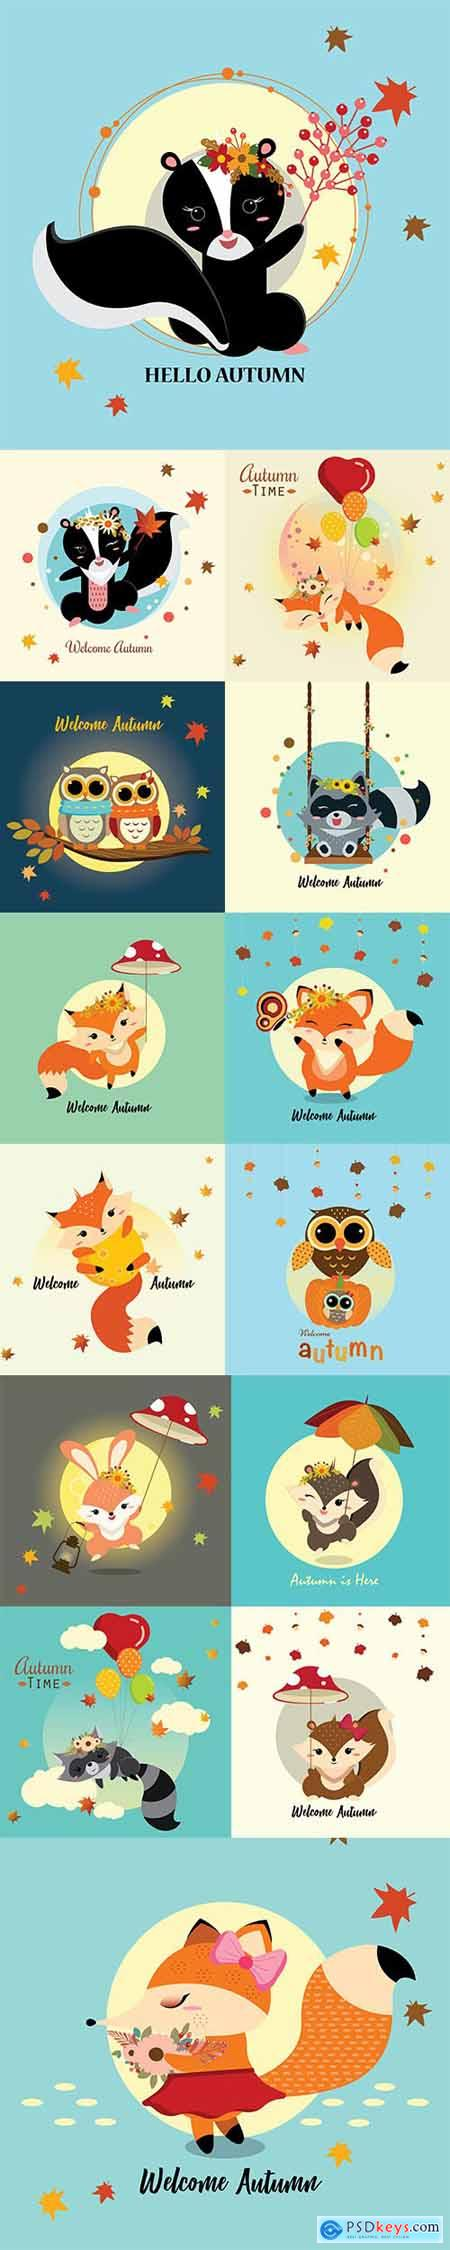 Hello Autumn Vector Illustrations 2